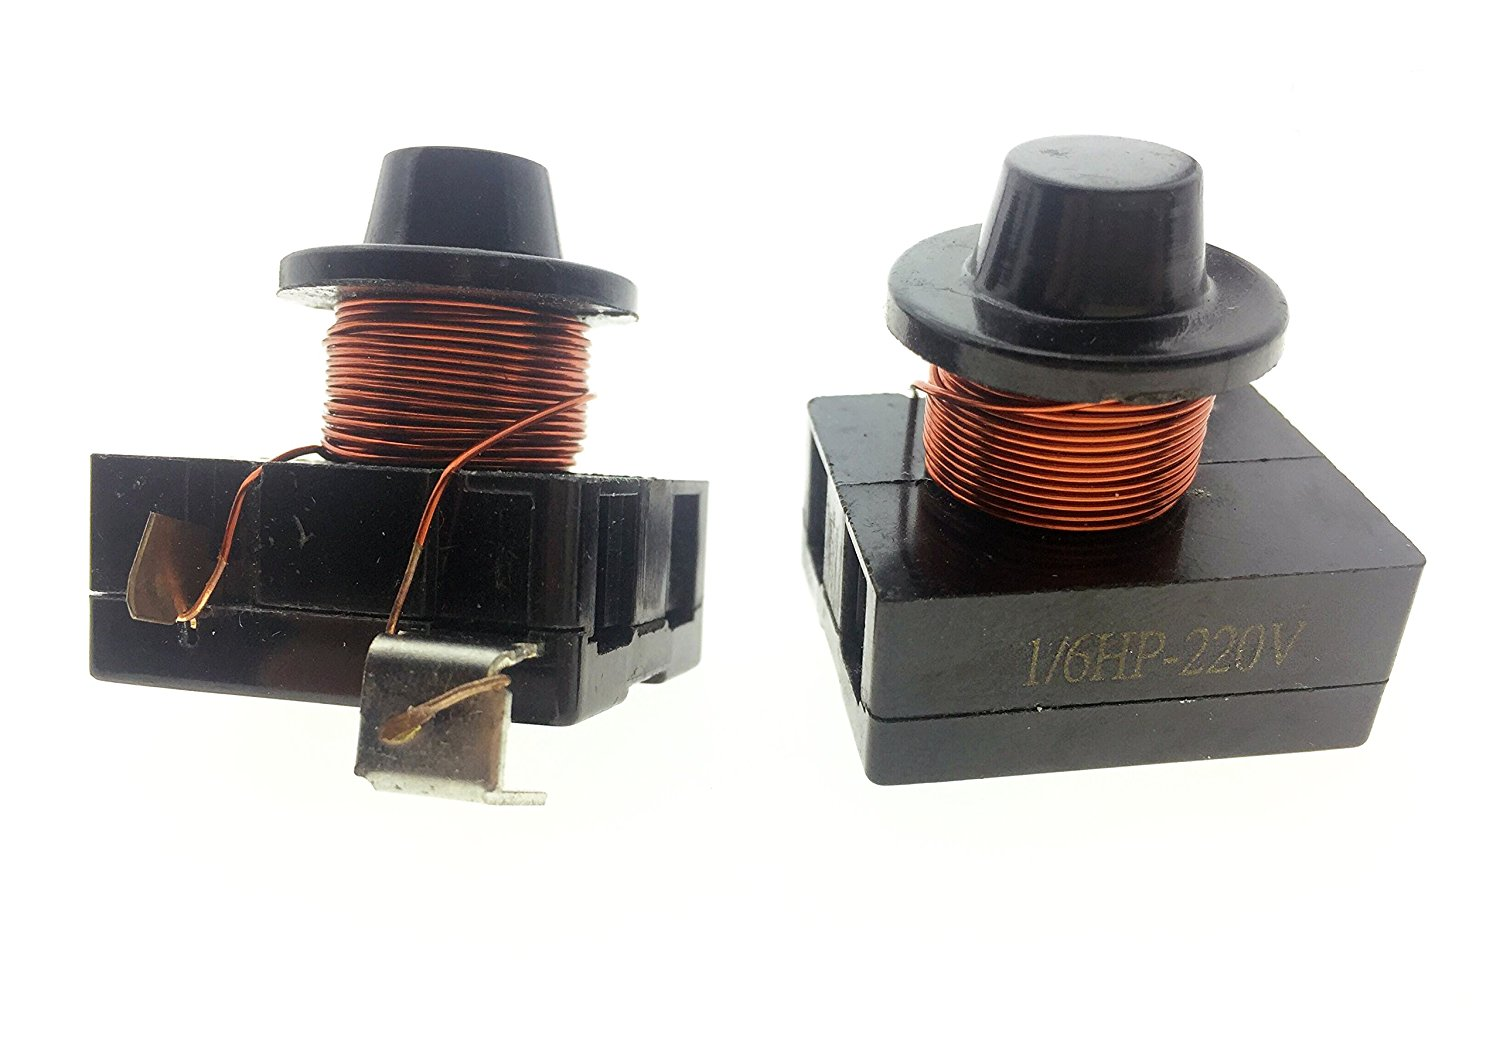 2Pcs Plastic Case Shell Copper Wire Electromagnetic Compressor PTC Starter Solenoid Relay for 1/6HP-220V Refrigerator Black